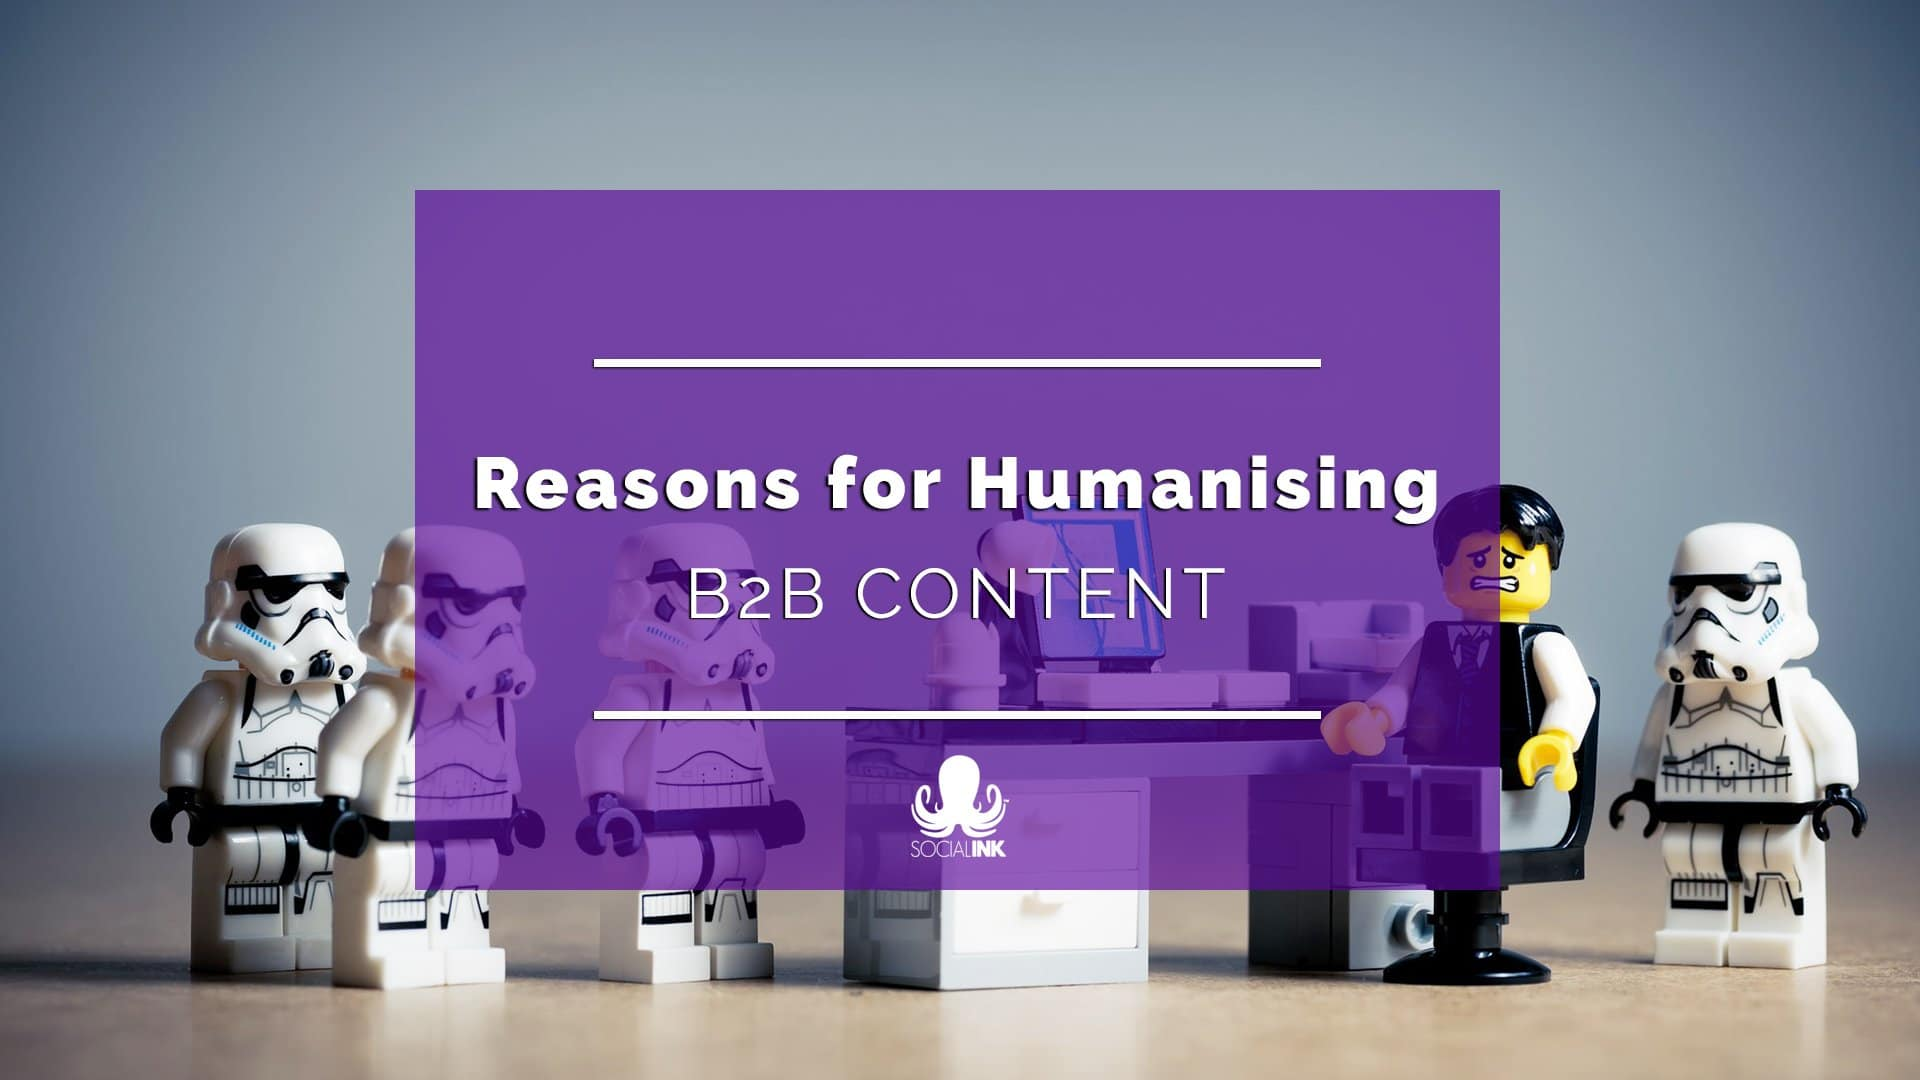 Reasons for Humanising B2B Content